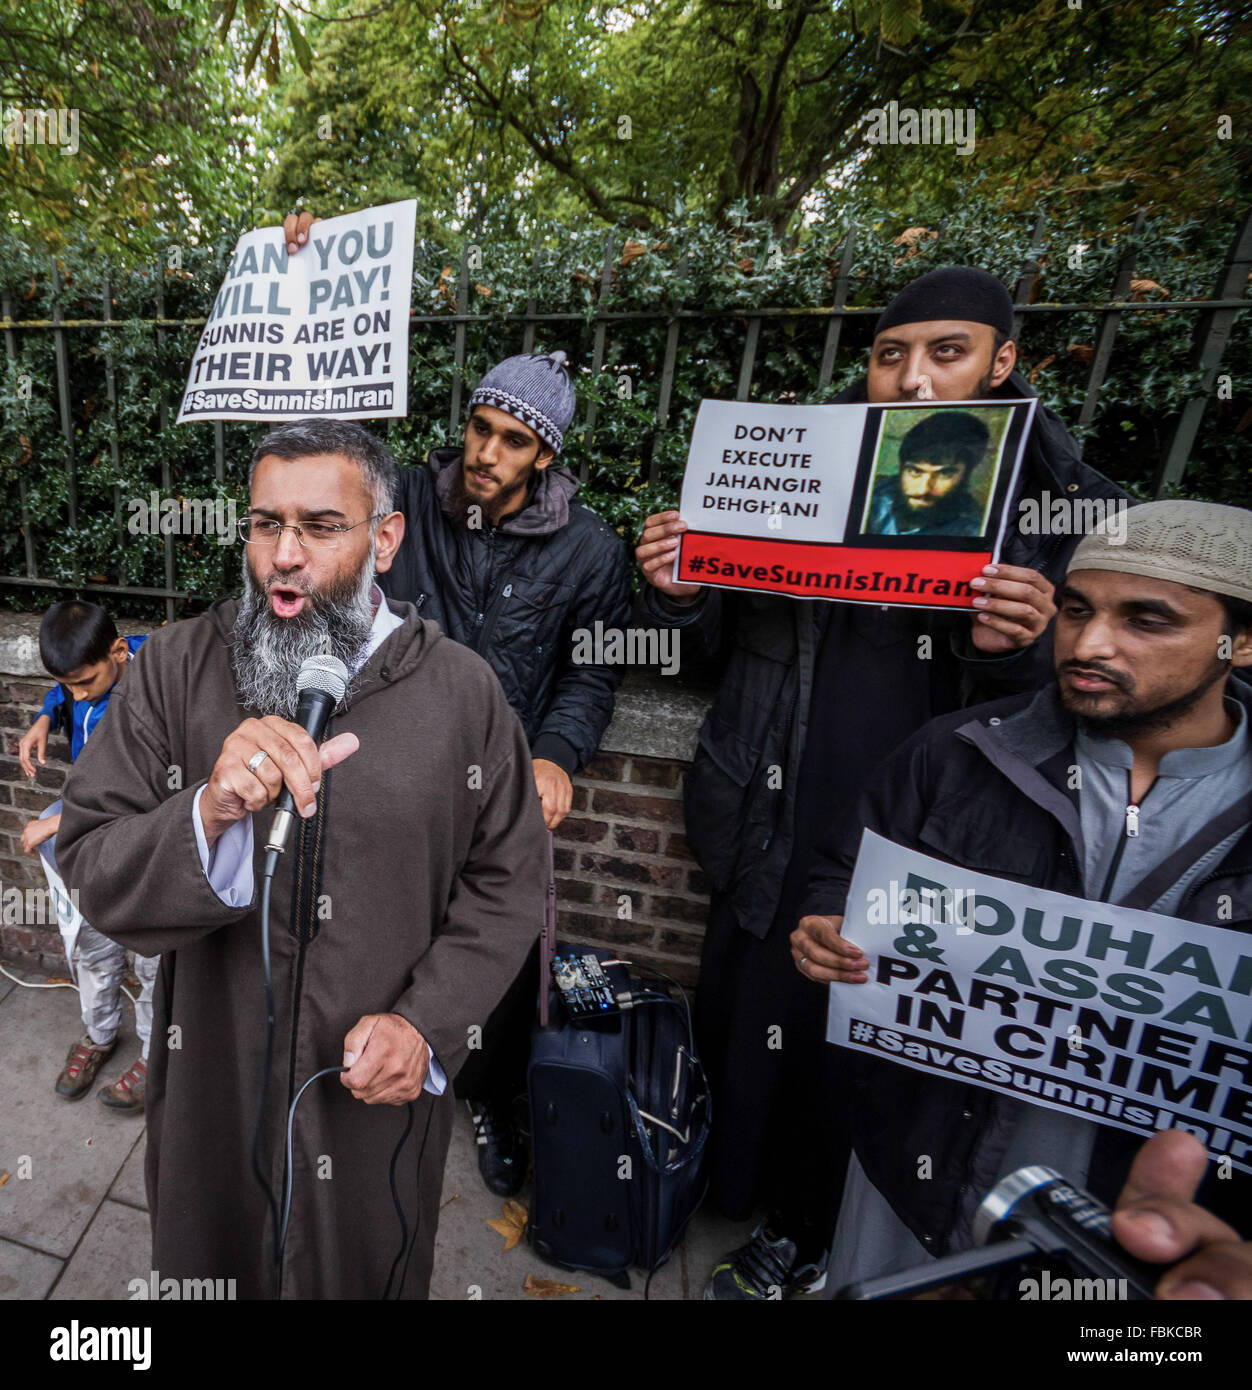 FILE IMAGES: London, UK. 18th Sept, 2013. File Images from 18-09-2013: Mohammed Reza Haque (2nd right), 35, known - Stock Image